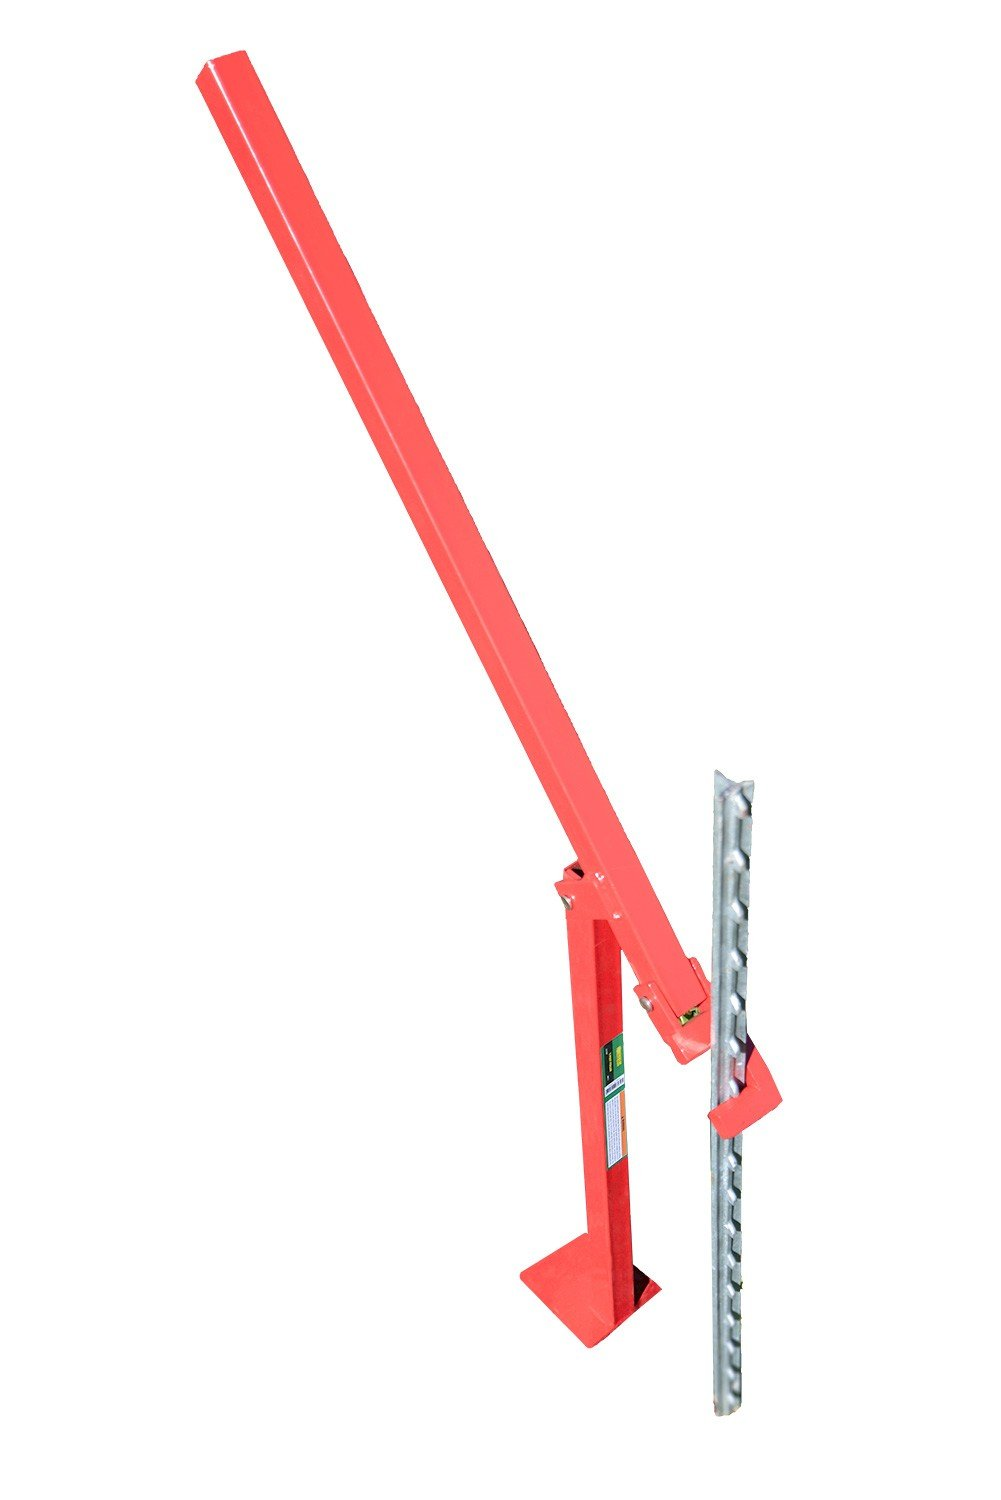 T Post Puller Powerfields High Quality Electric Fence